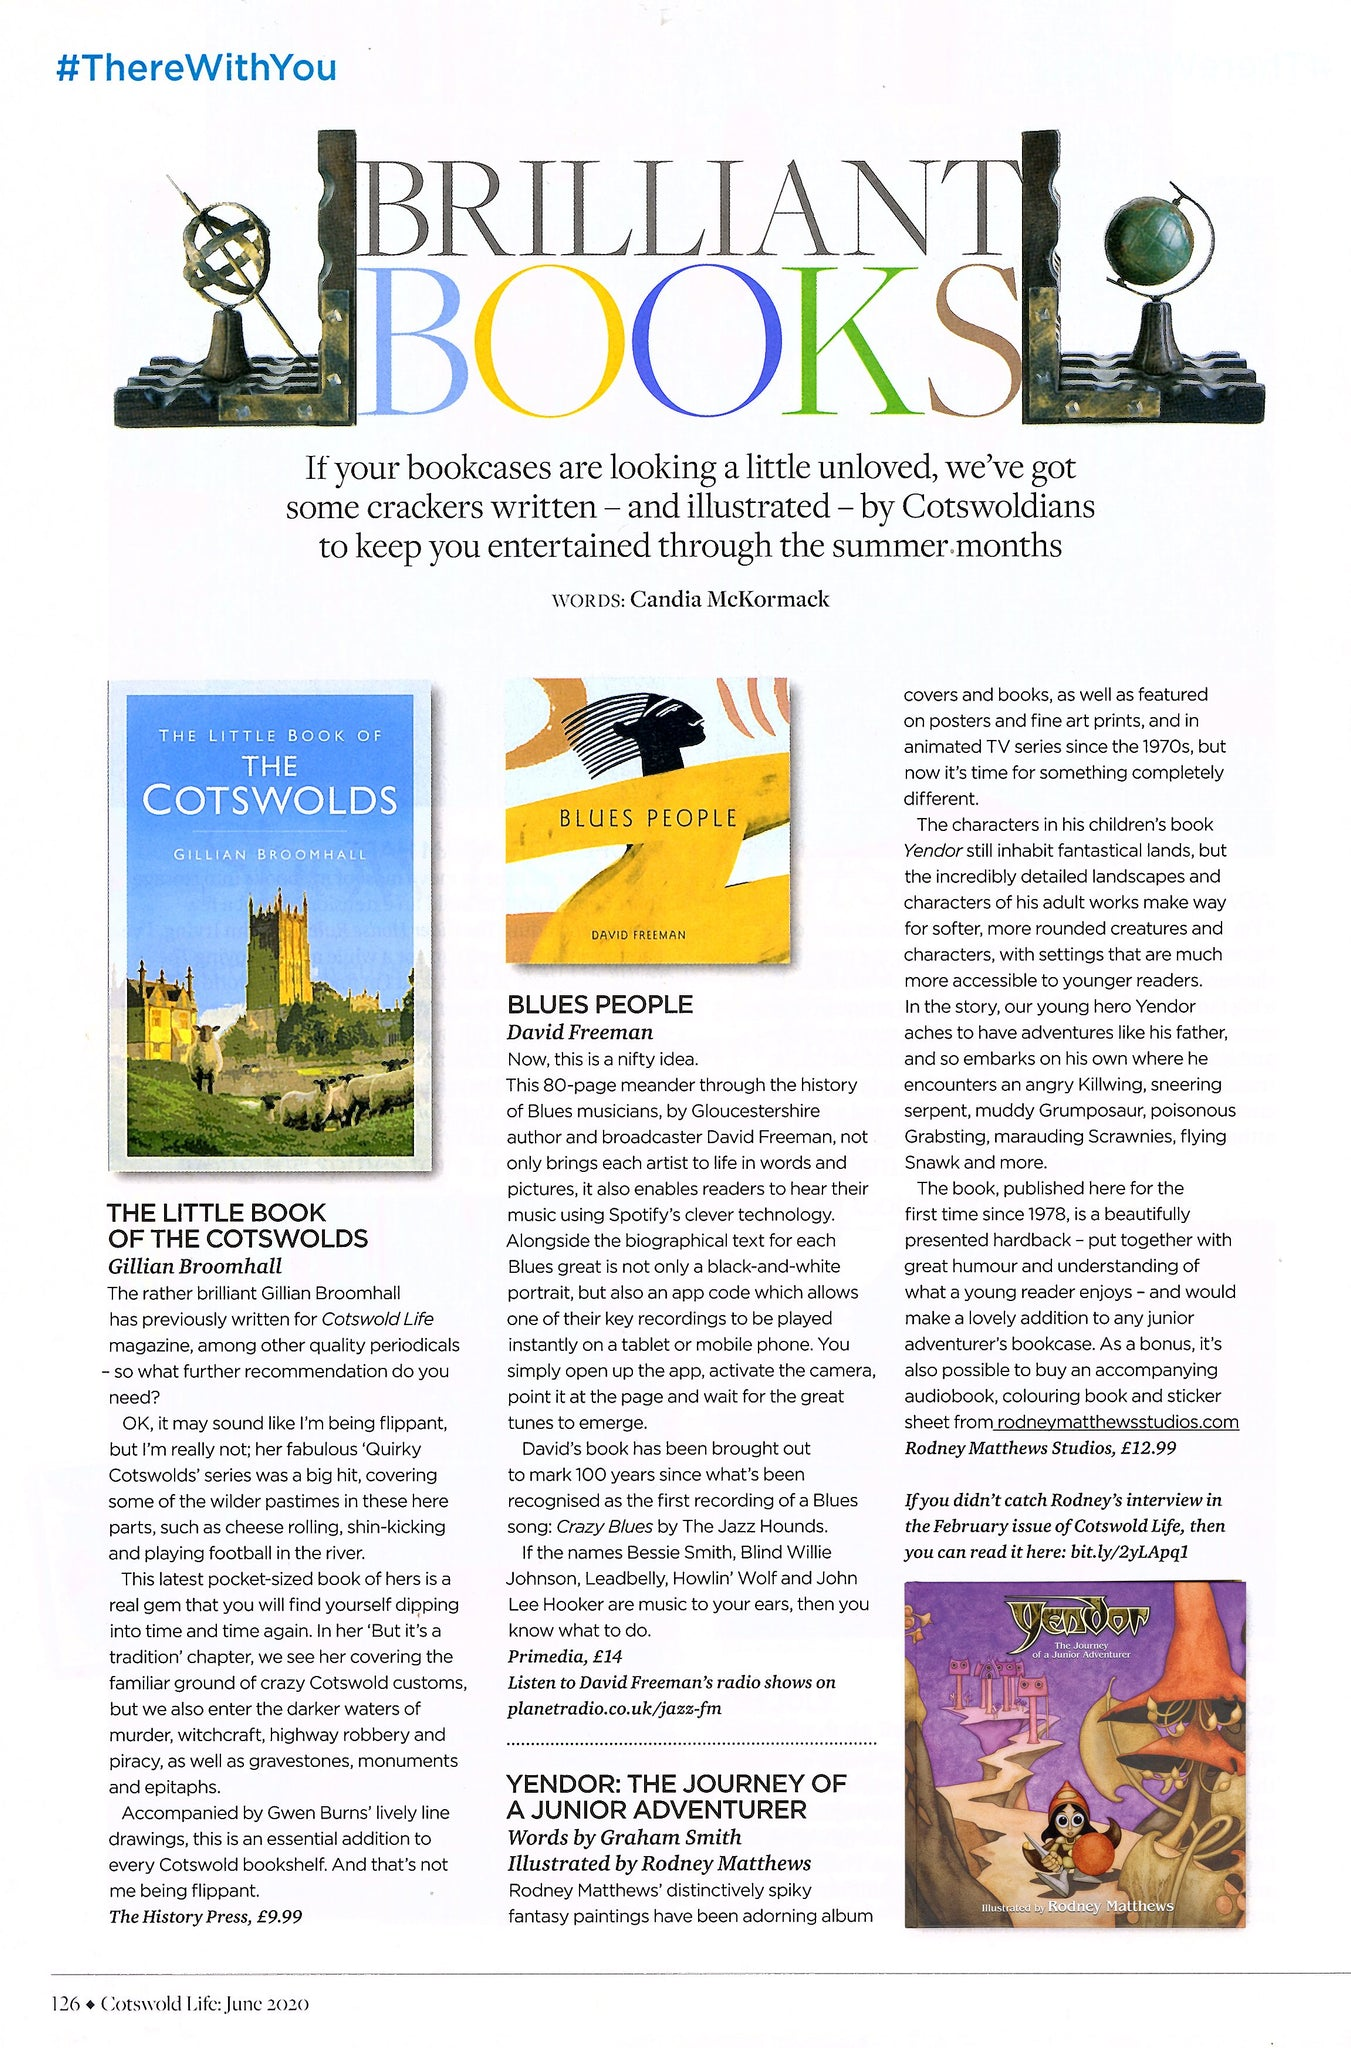 Yendor Review in Cotswold Life